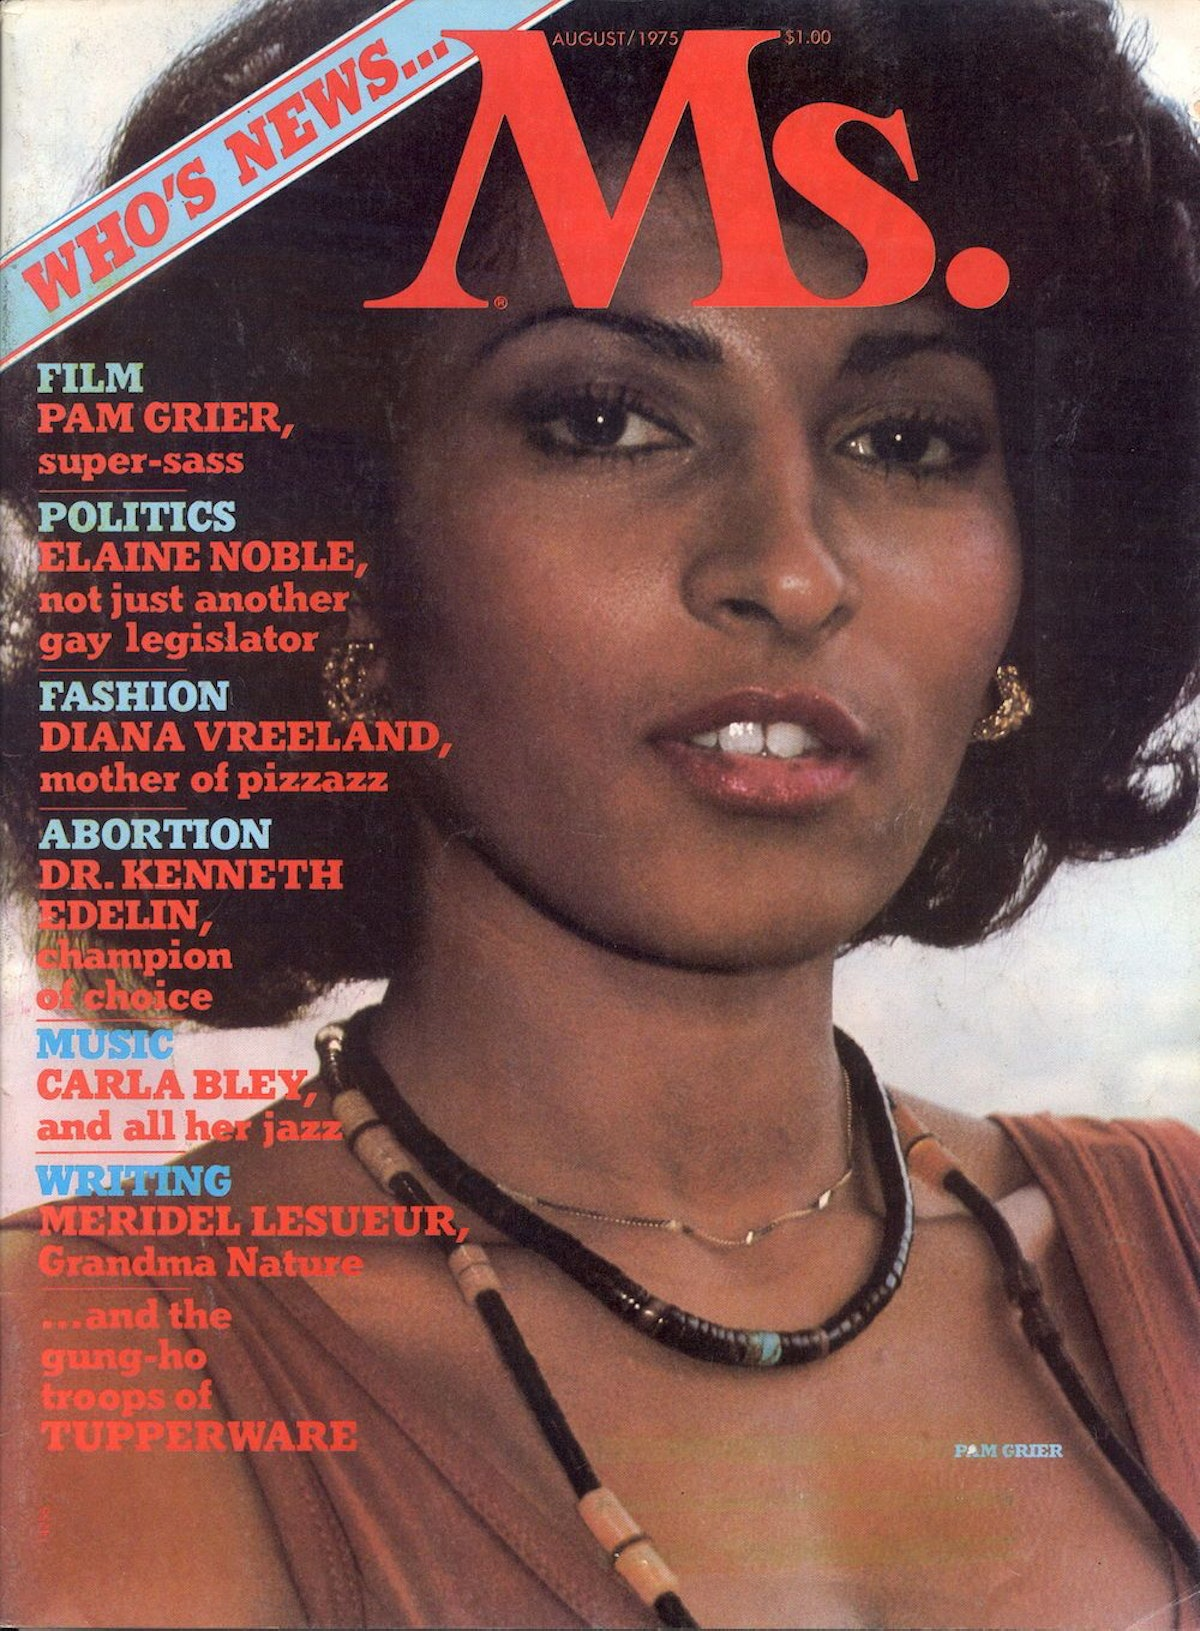 Pam Grier's Ms. magazine cover